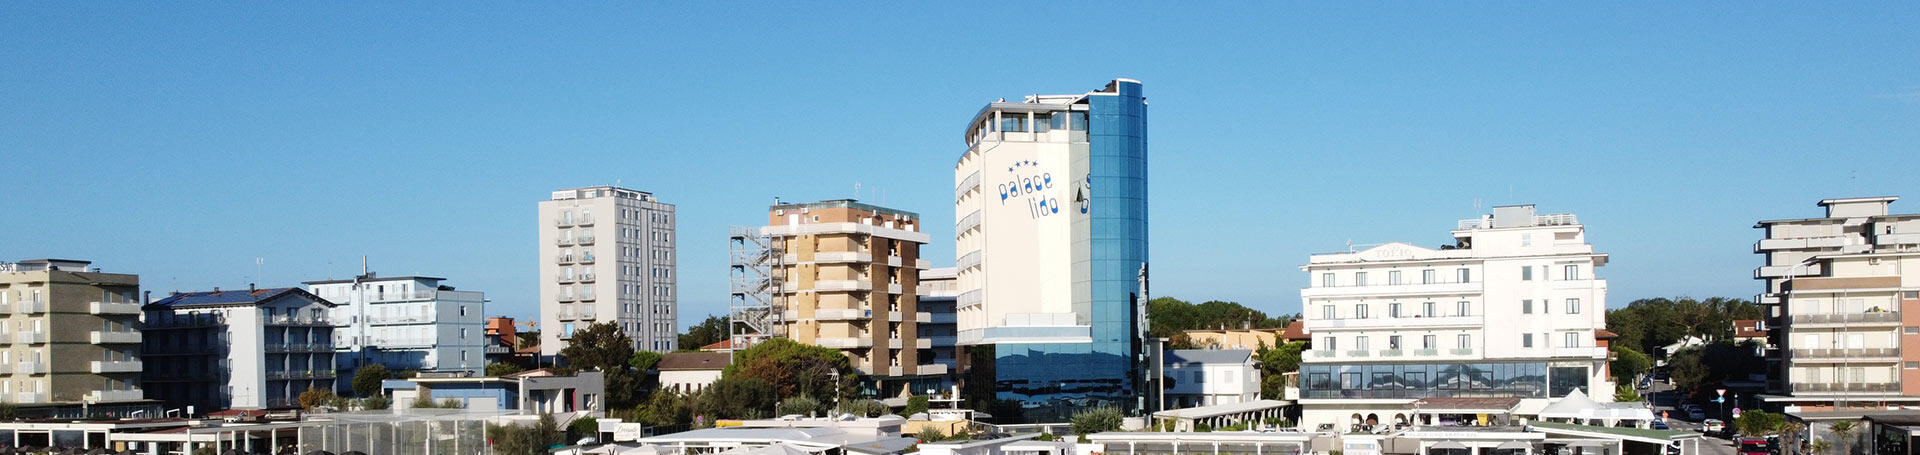 palacelidohotel en reviews-and-comments 011